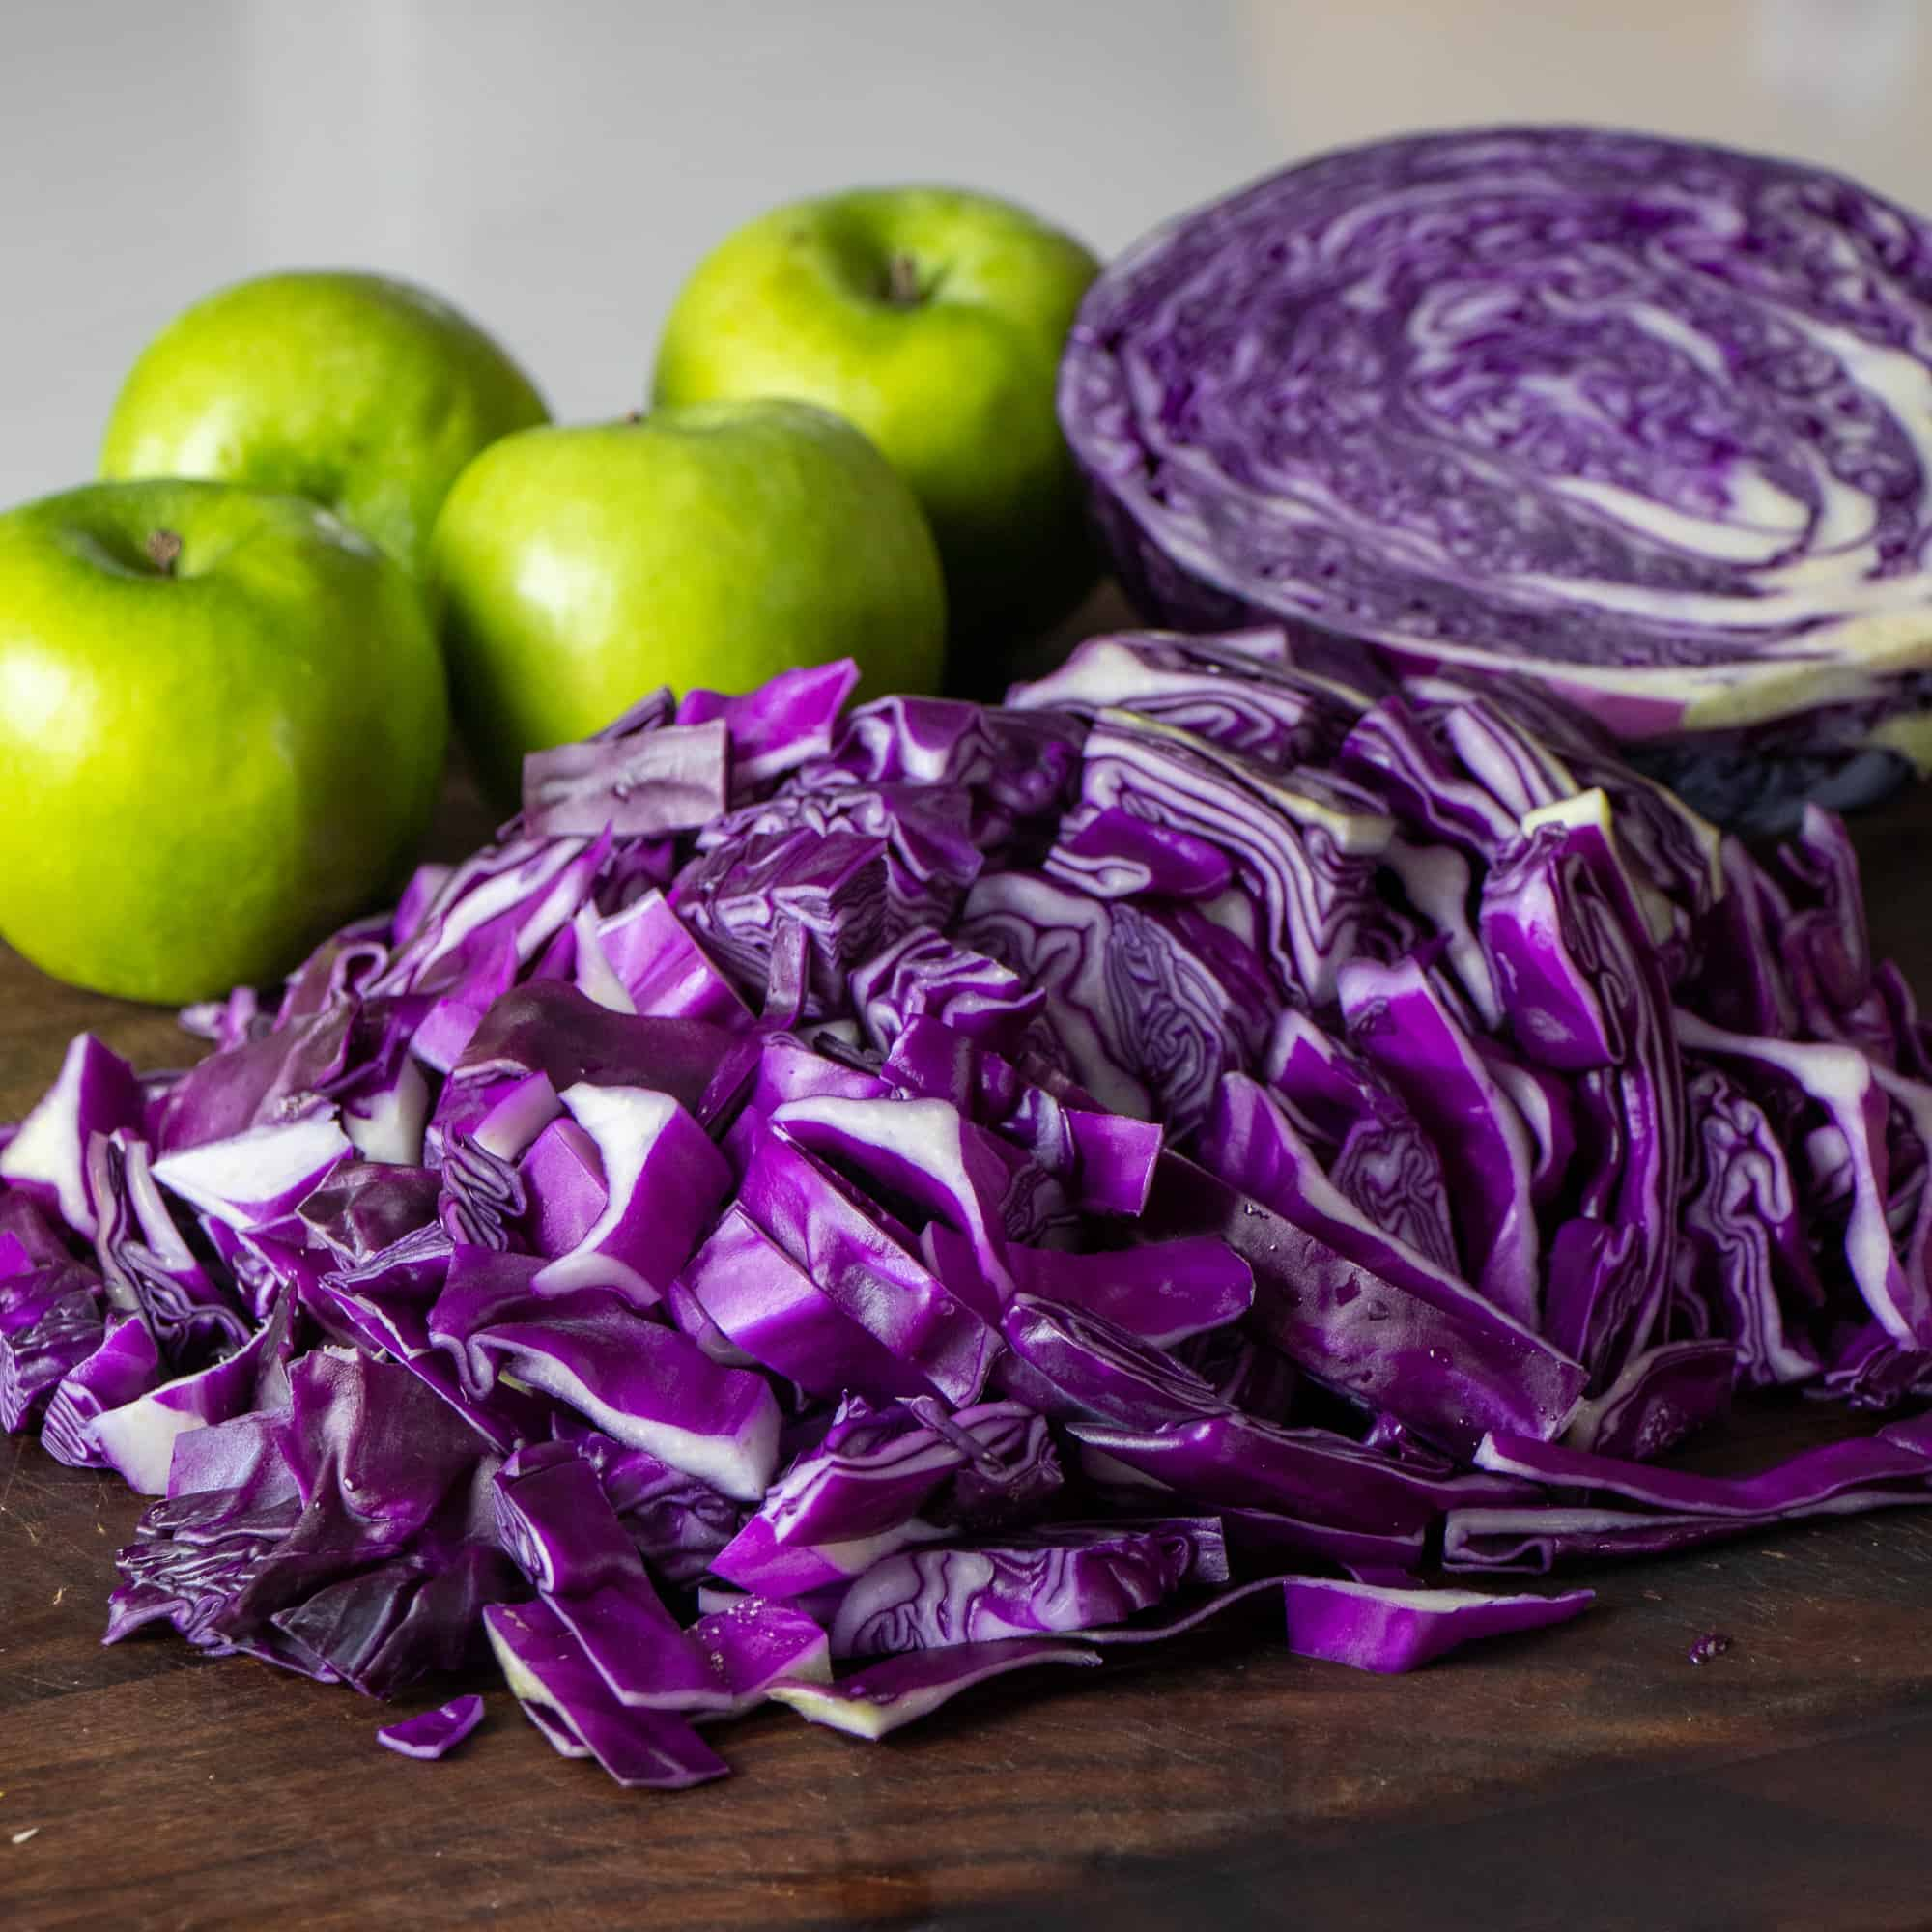 A cutting board with chopped up fresh red cabbage with granny smith apple behind it.